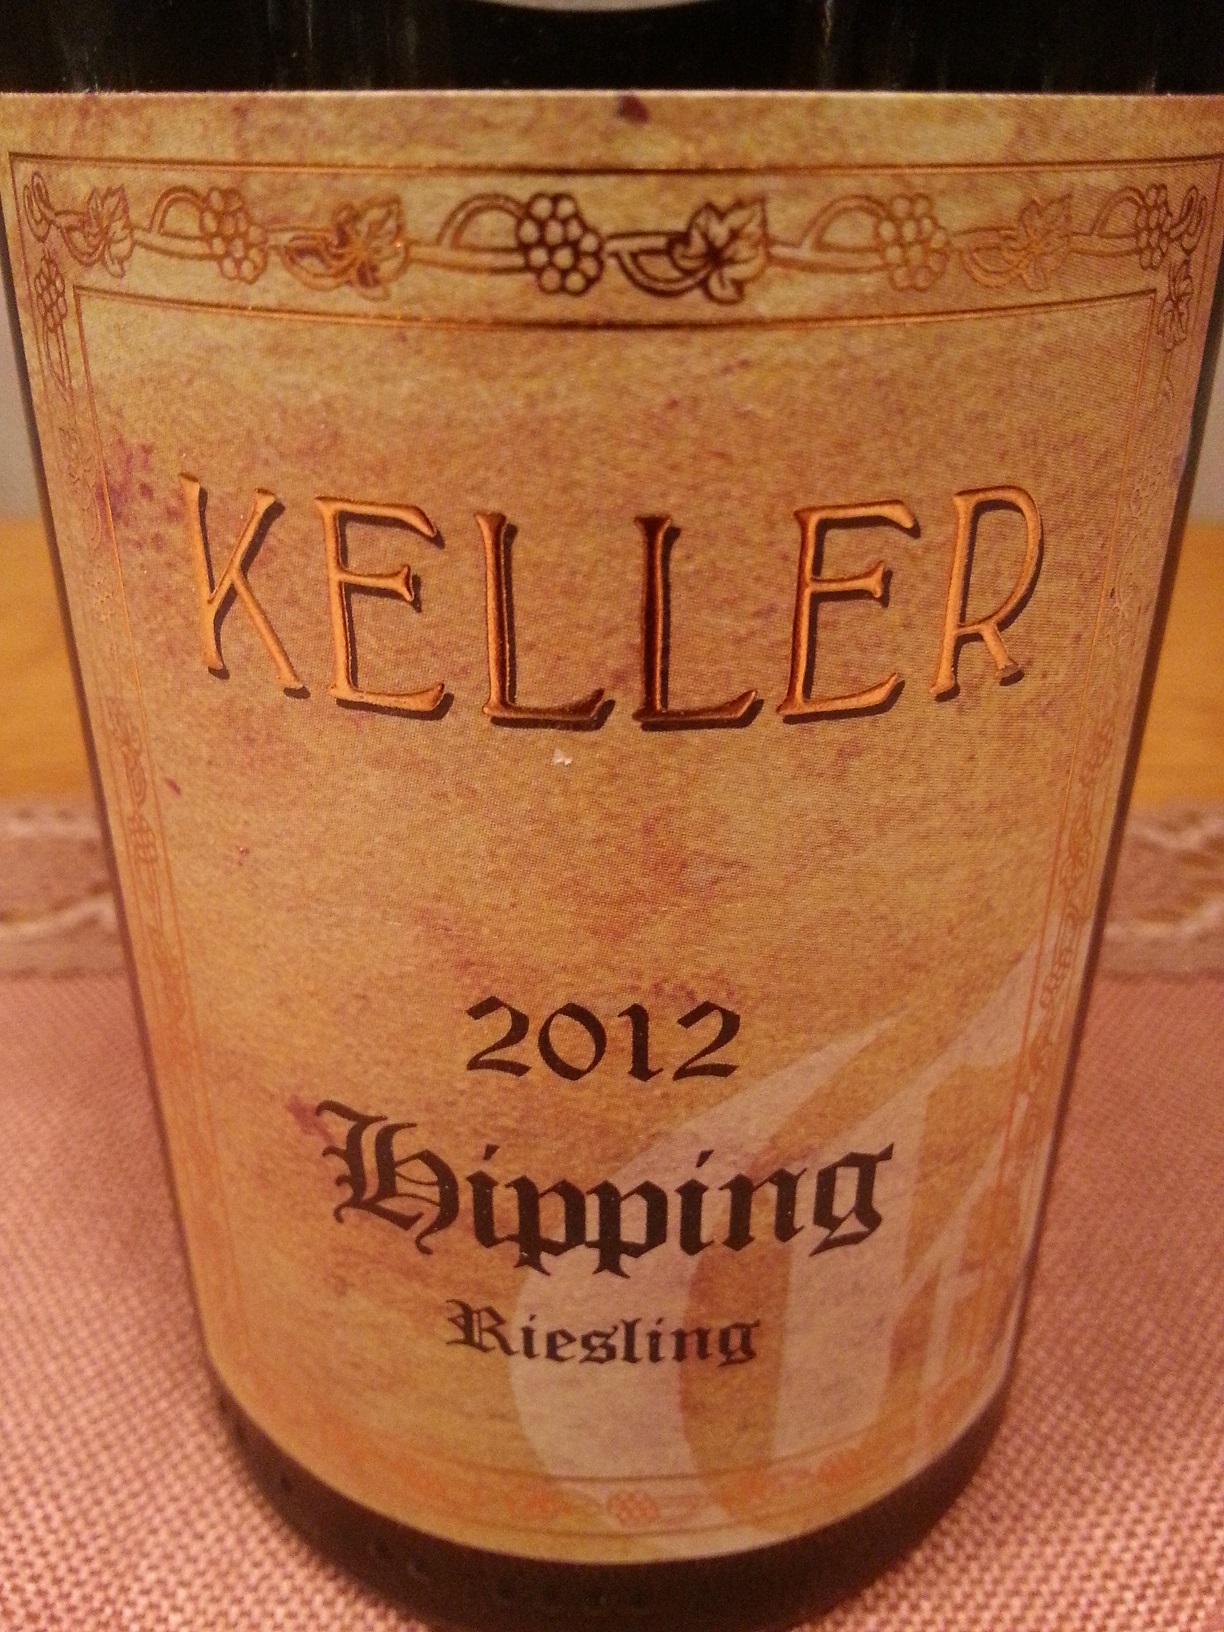 2012 Riesling Hipping GG | Keller